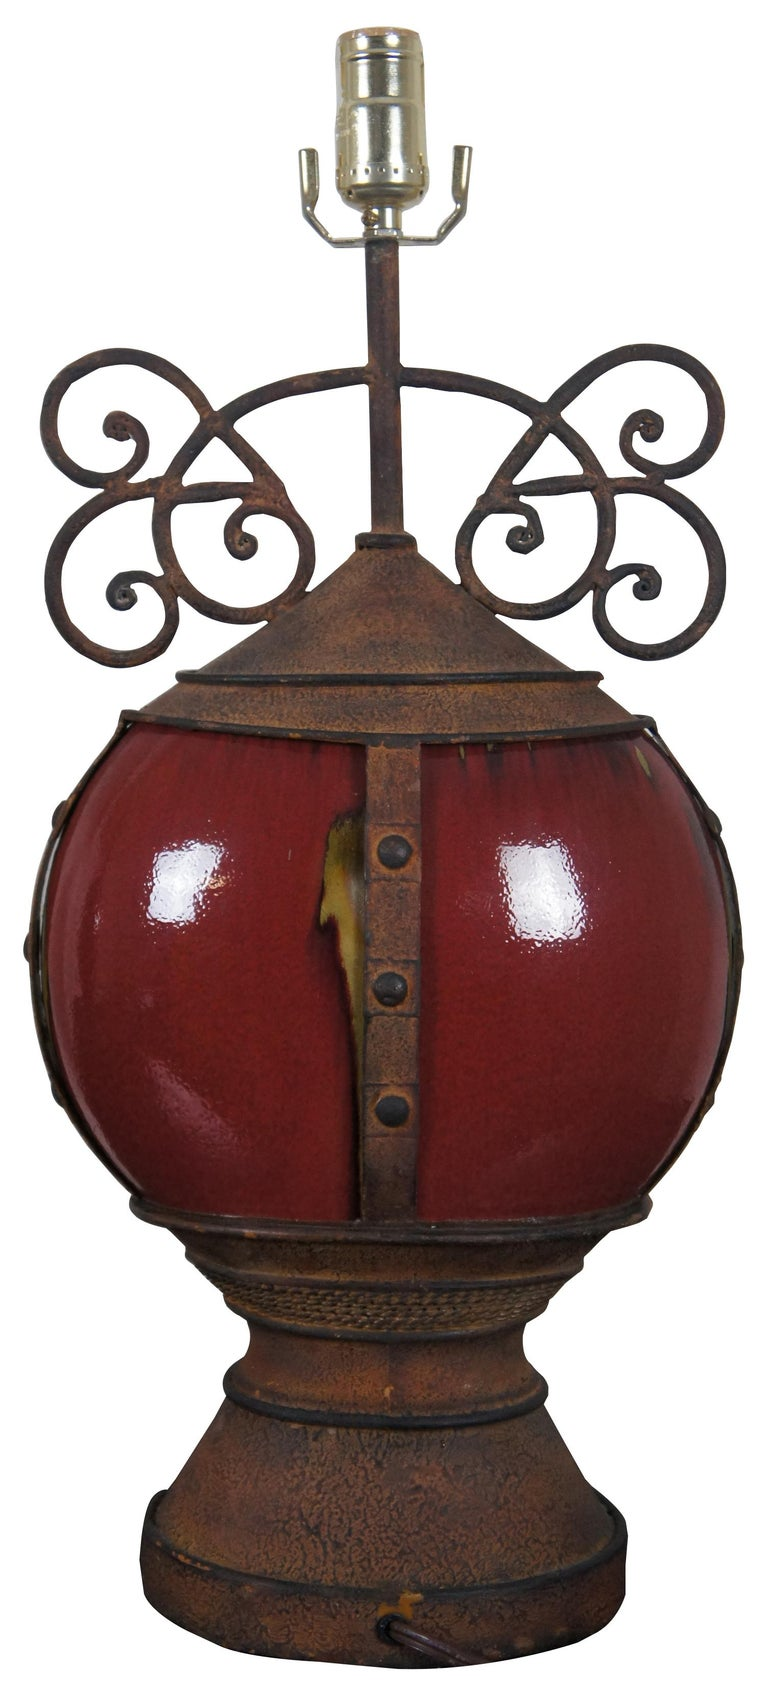 Rustic 2 Southwestern Scrolled Wrought Iron Oxblood Red Ceramic Table Lamps Light For Sale